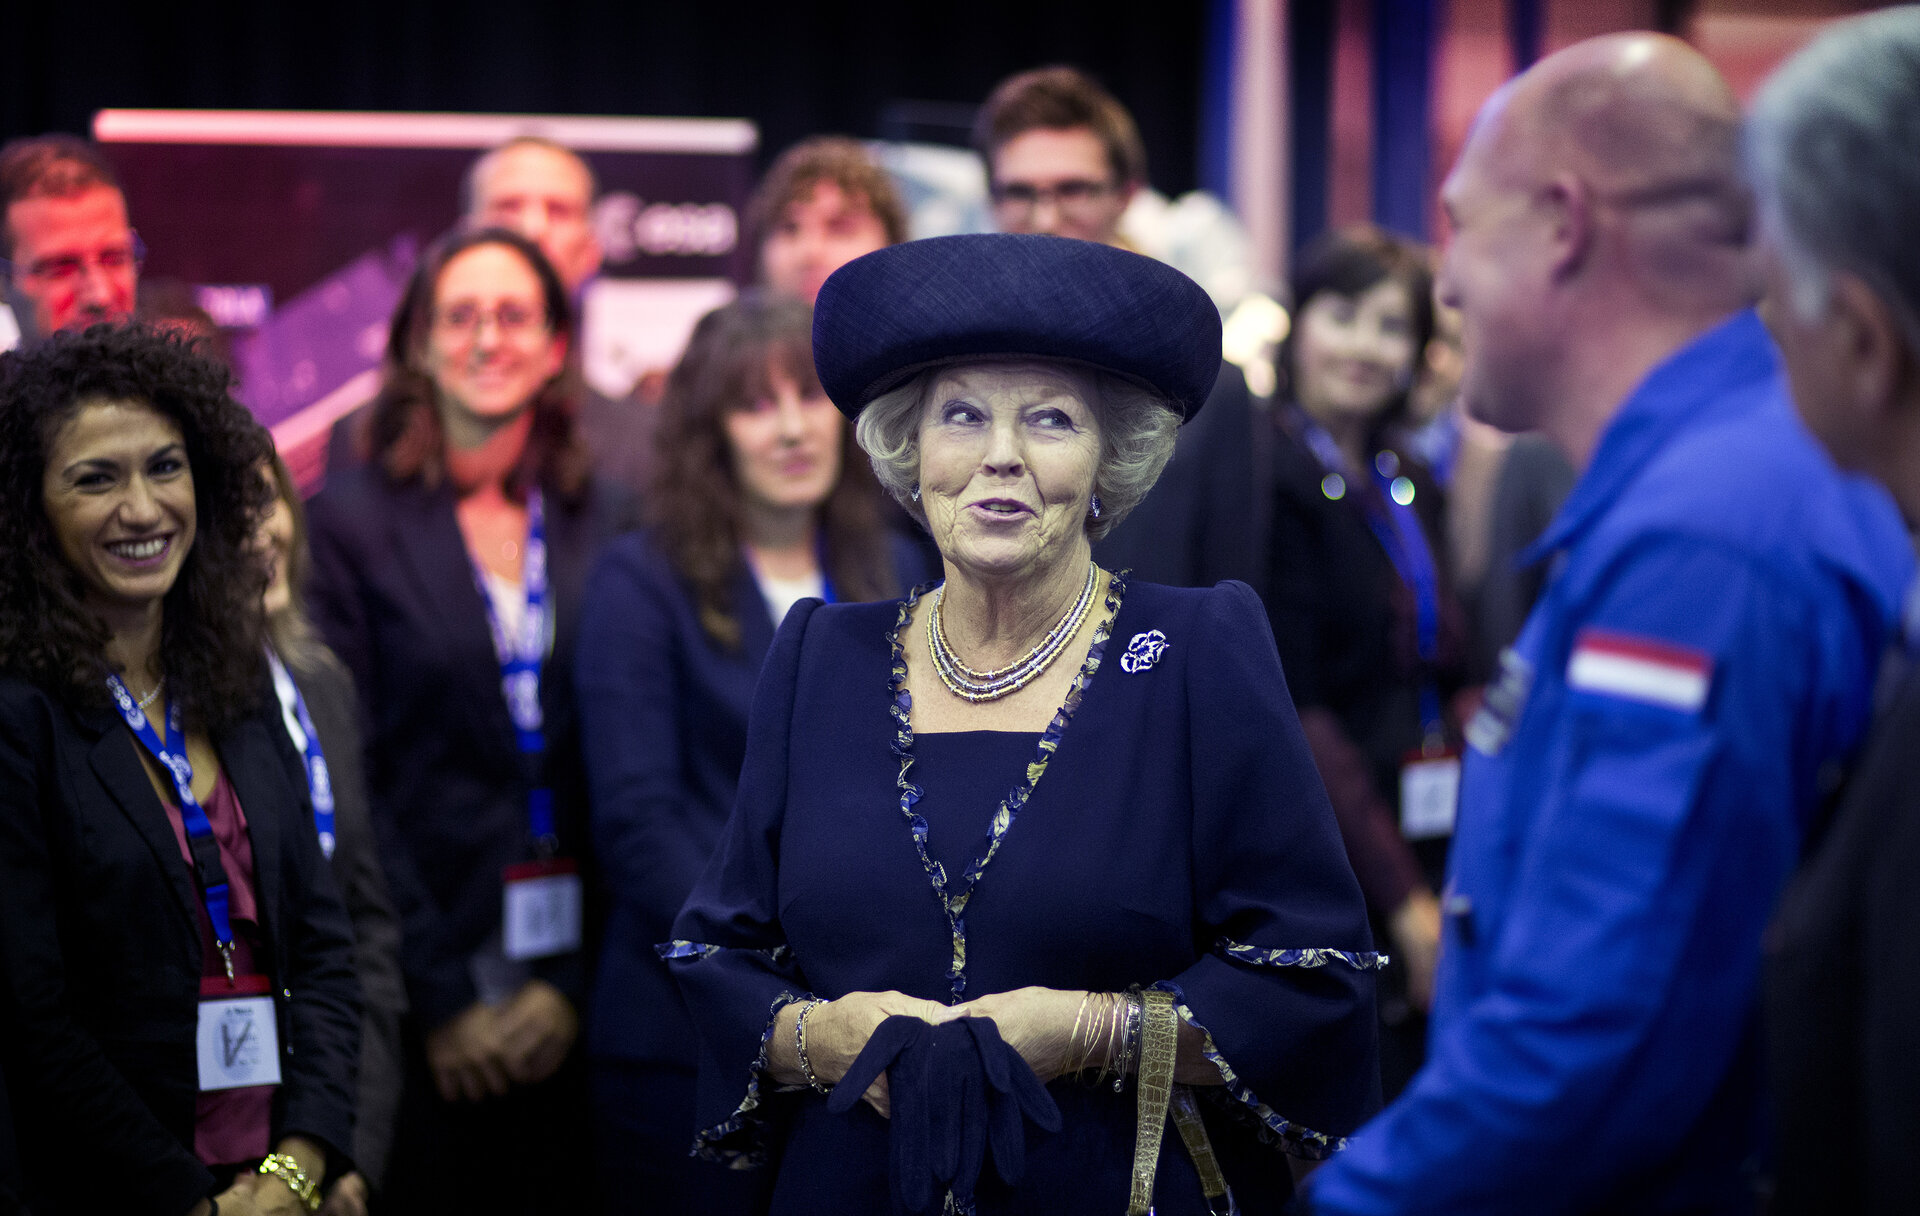 ESA astronaut Andre Kuipers with HM Queen Beatrix